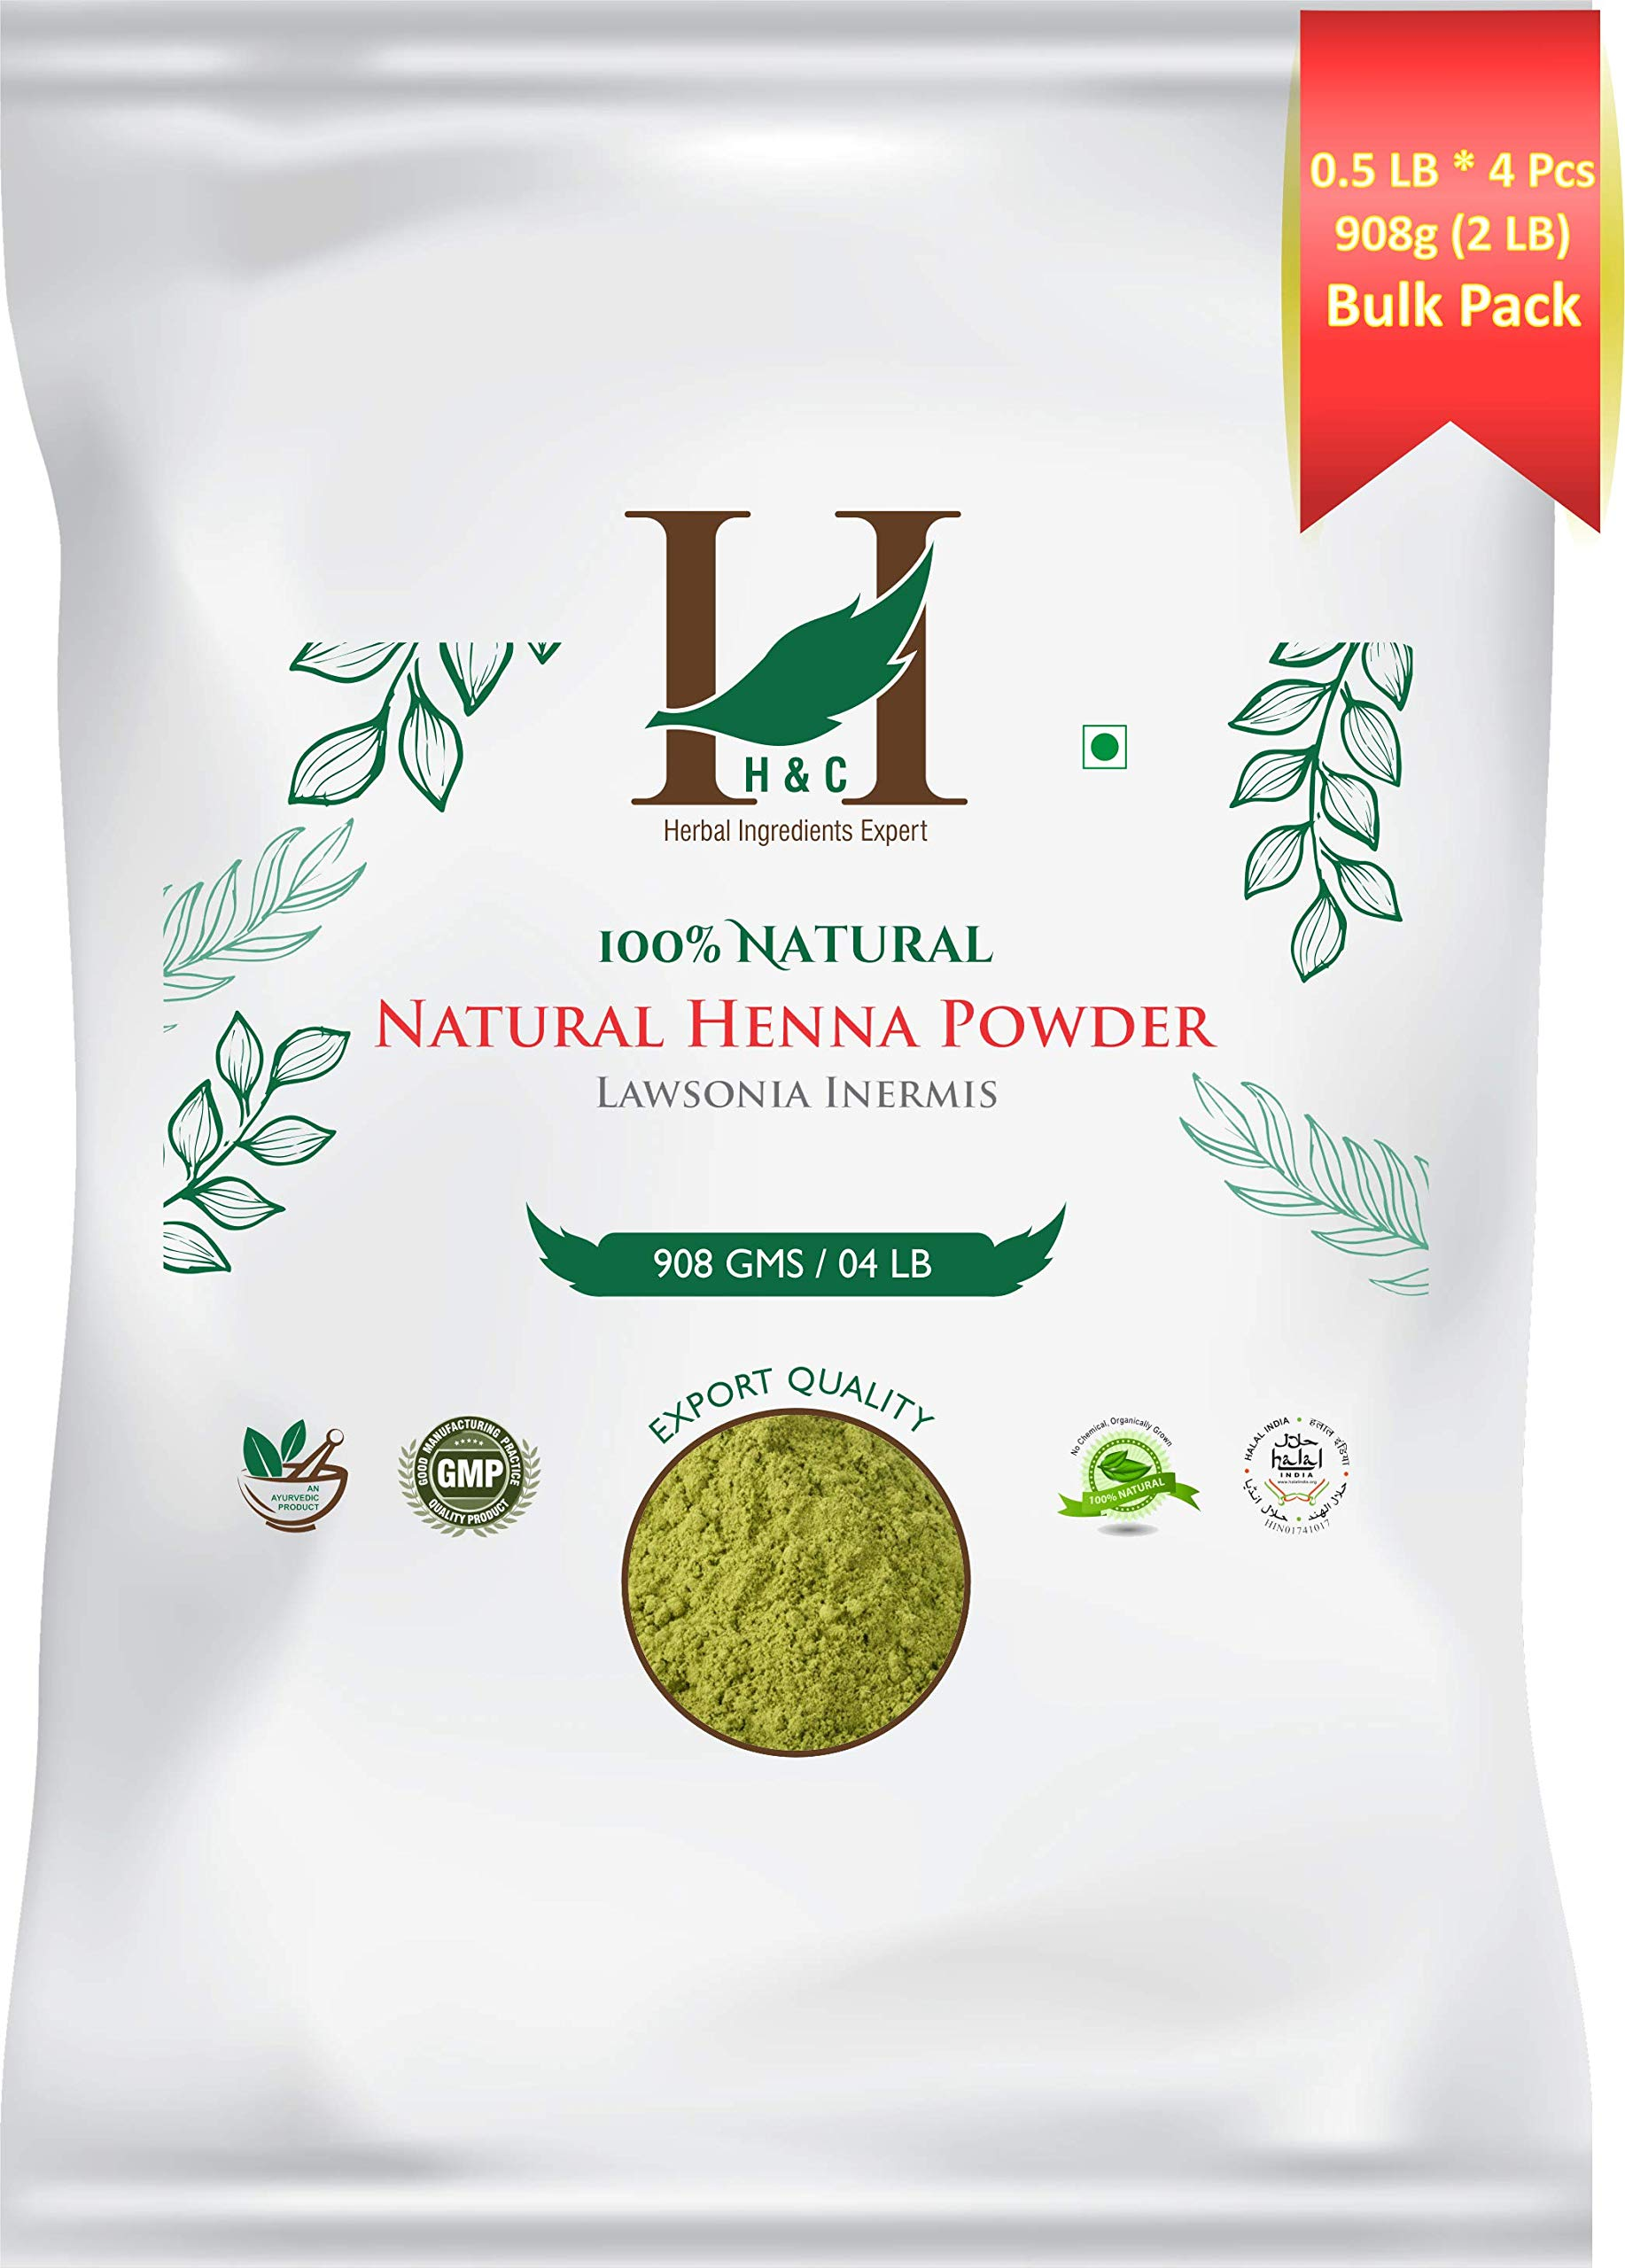 100% Natural Organically Cultivated Henna Powder Specially For Hair - Bulk Pack -Triple Sifted Henna Powder - Lawsonia Inermis (For Hair) 02 LB / 32 oz (908 gms)- No PPD no chemicals, no parabens by H&C